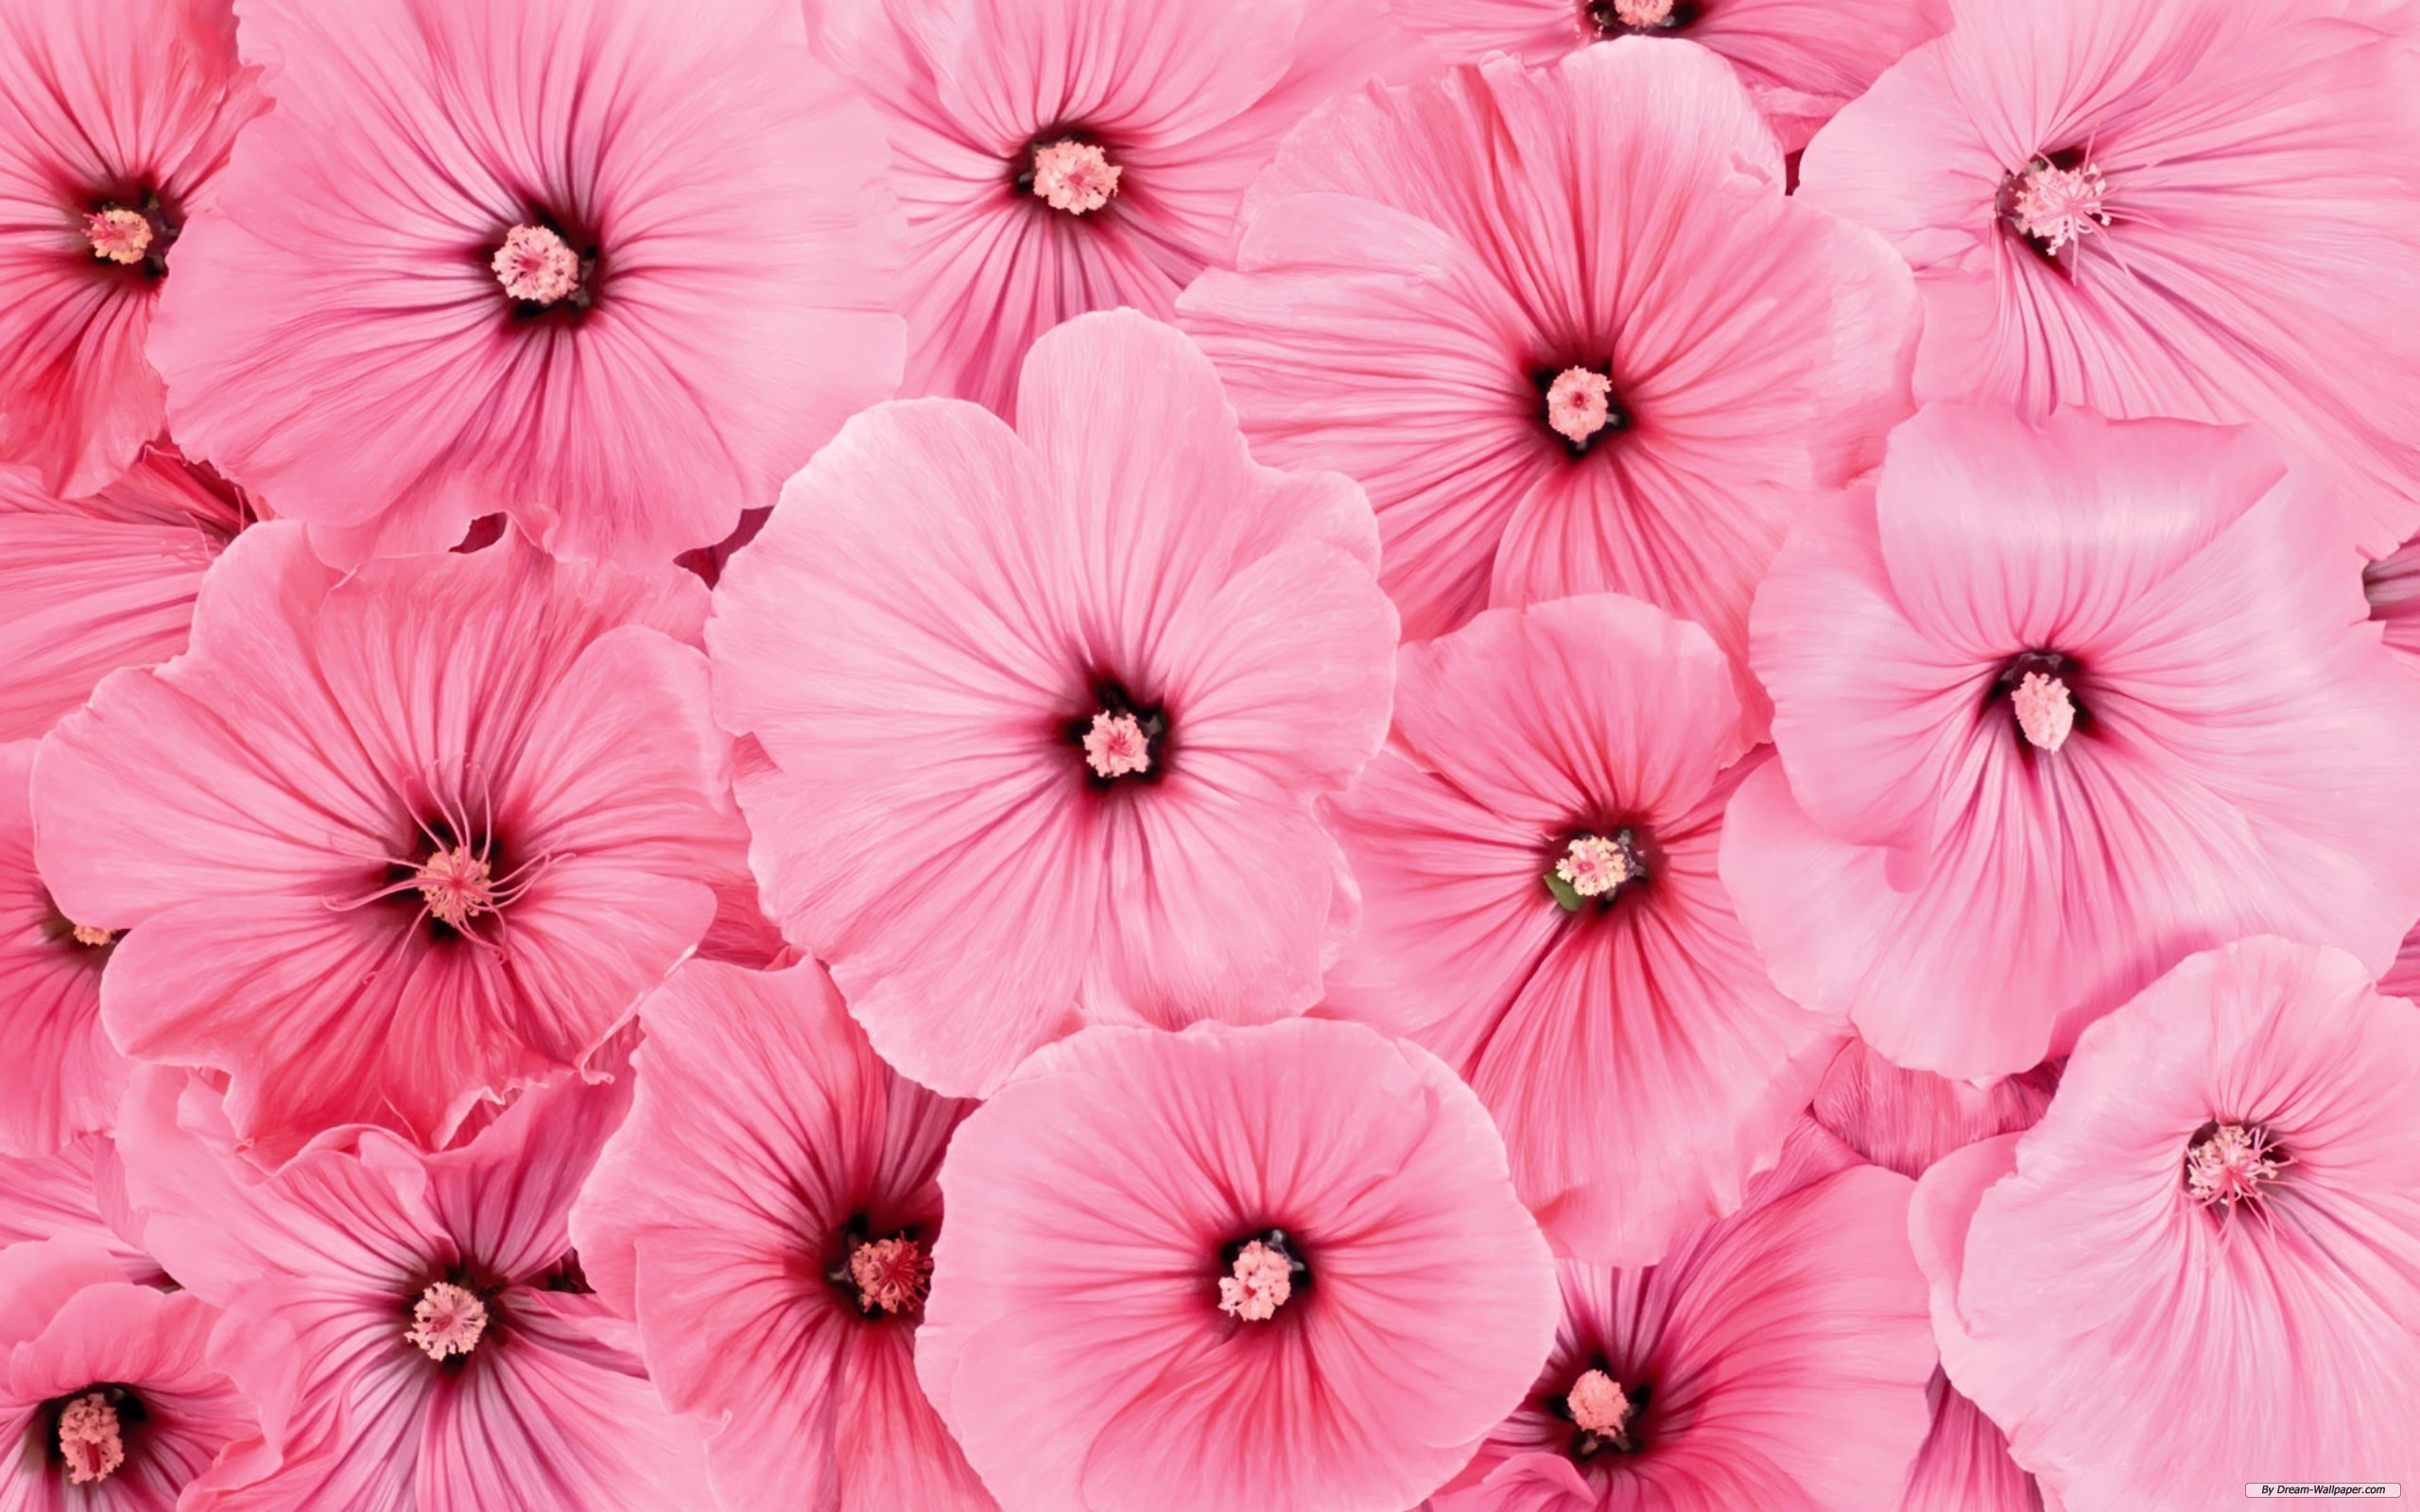 Flowers Wallpapers HD Pictures One HD Wallpaper Pictures Backgrounds 2560x1600